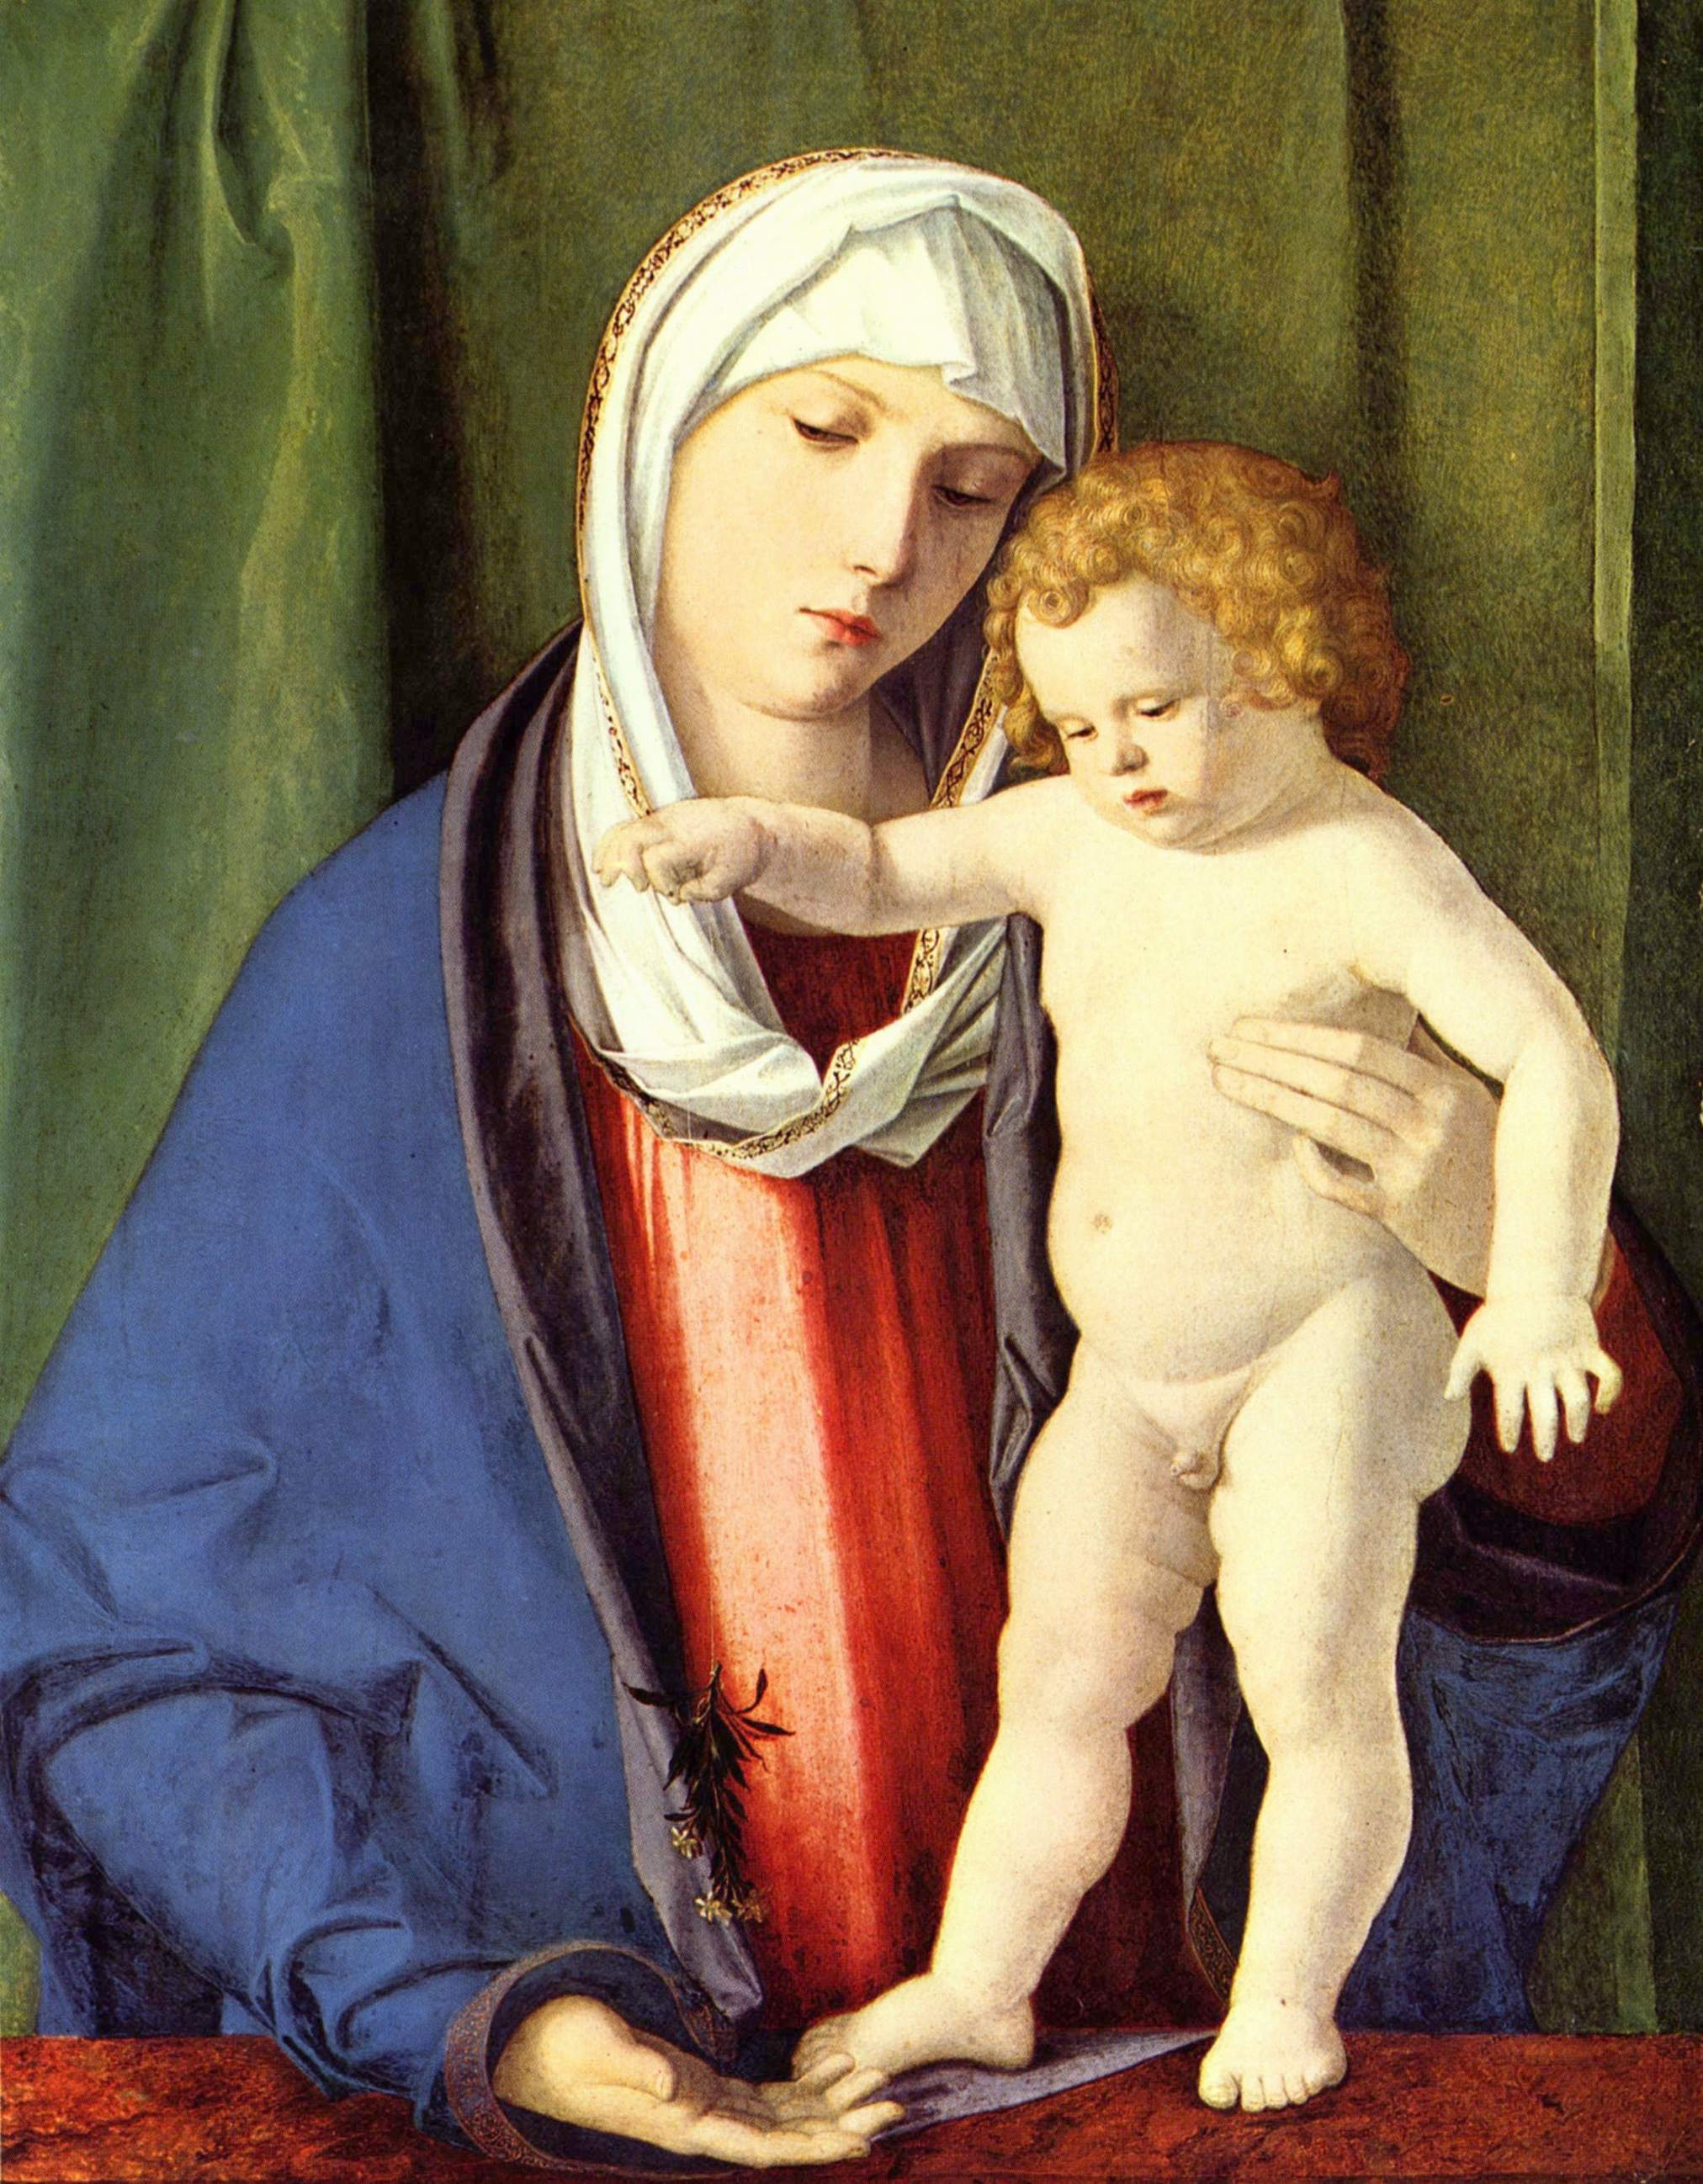 madonna and venus from two different Italian renaissance painting is the painting of showing the madonna and child these two venus in both these roles in the two famous tempera.